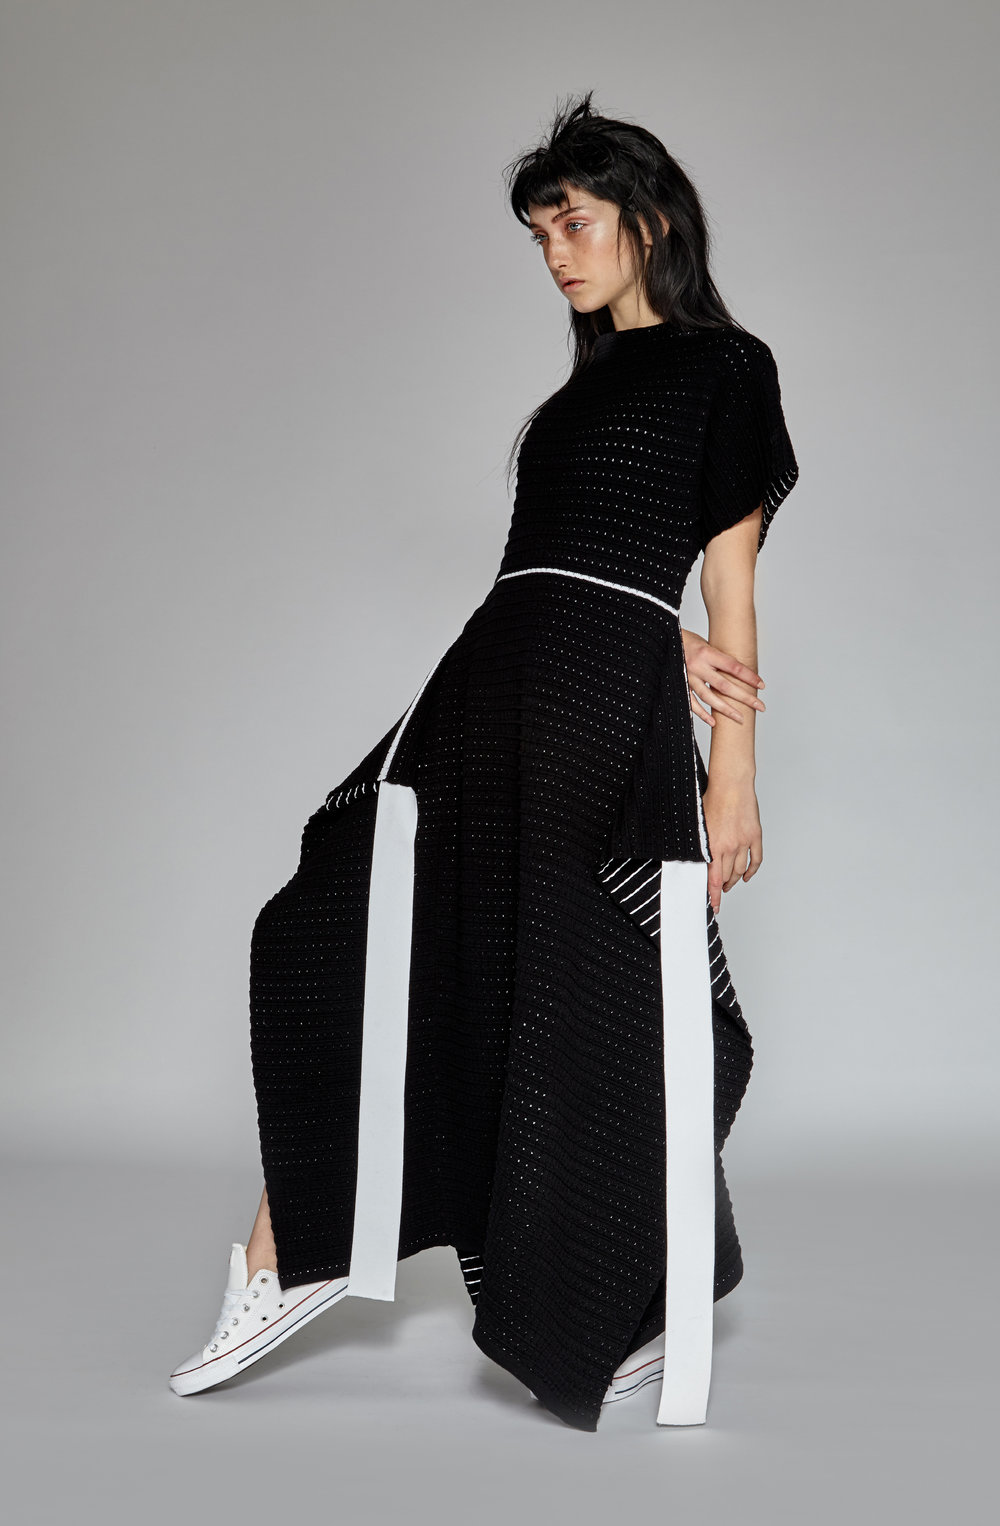 Knit Dress by Anita Szu-Yi Chen, MFA Knitwear Design.